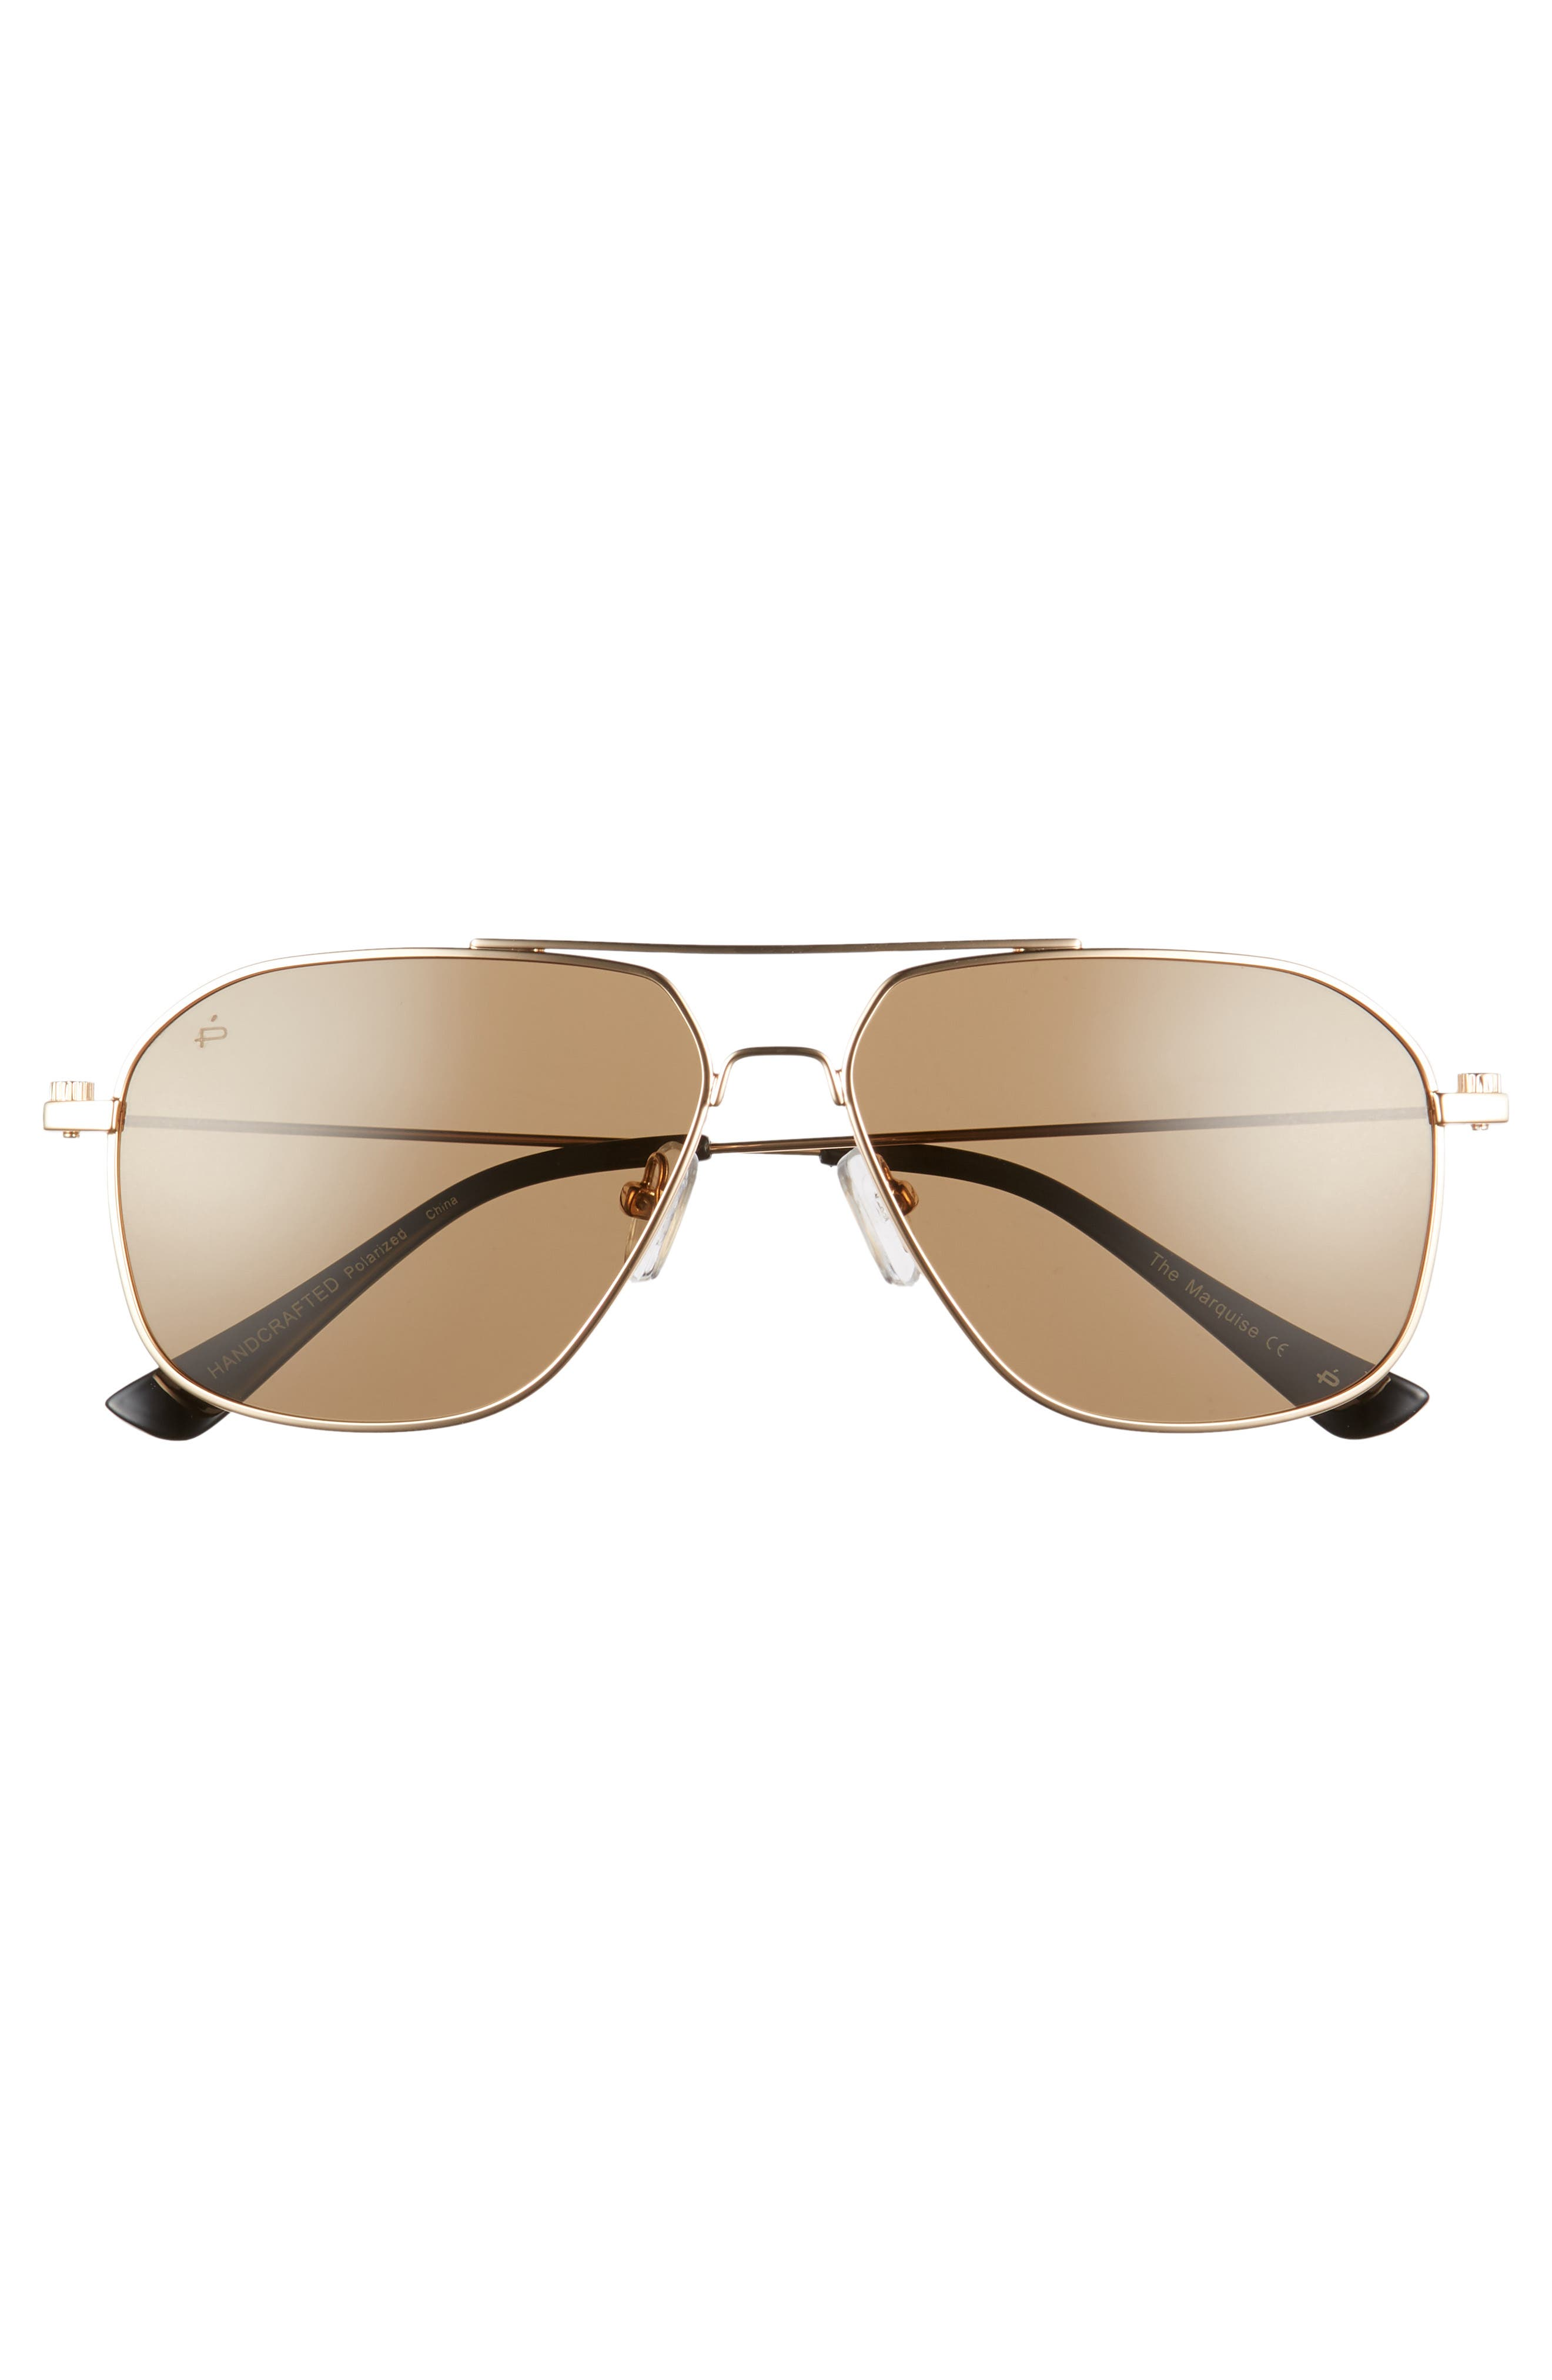 Privé Revaux The Marquise 58mm Aviator Sunglasses,                             Alternate thumbnail 3, color,                             Metal/ Gold